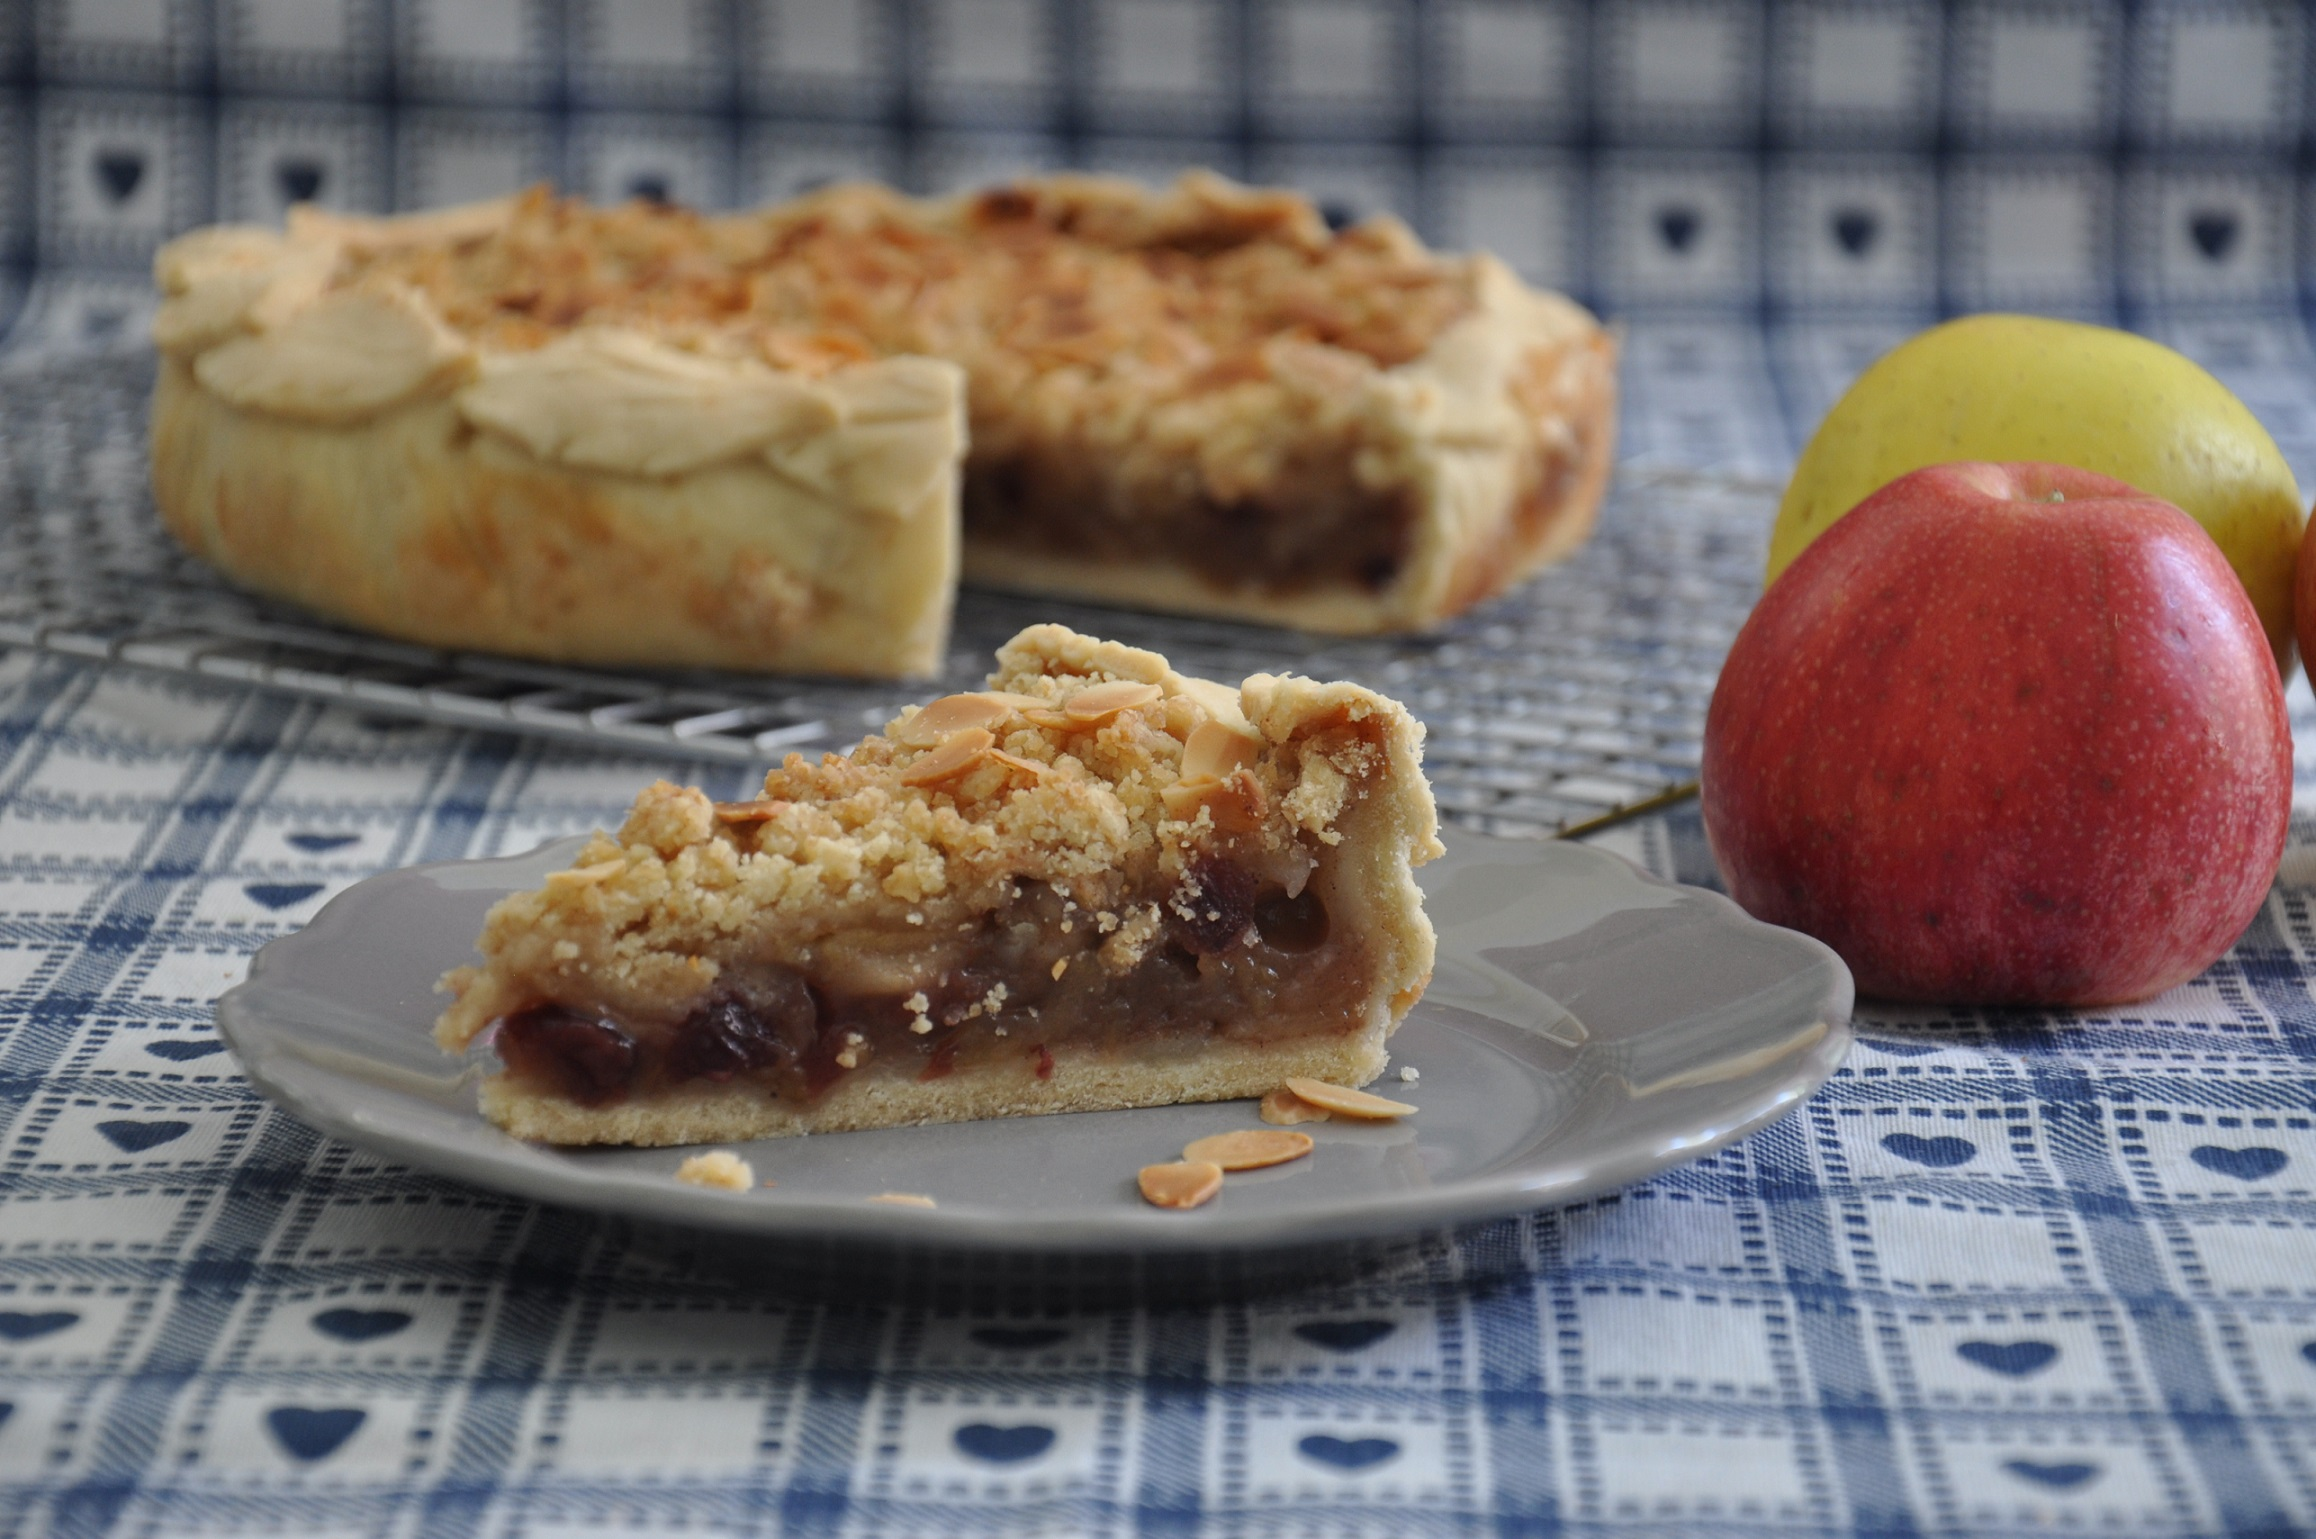 La mia Harvest Apple Pie per il Club del 27